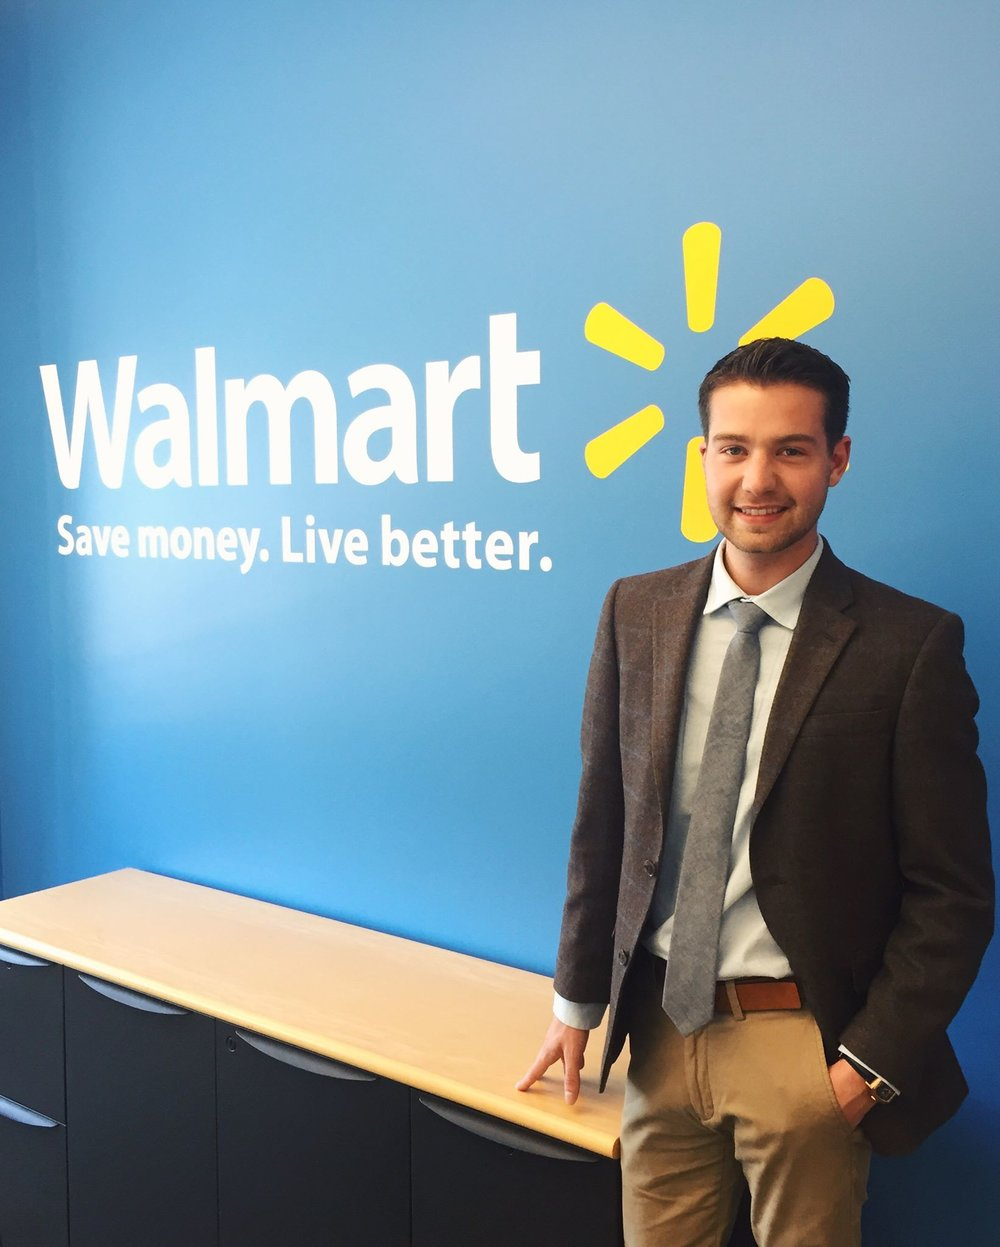 Connor Storch Walmart Marketing.jpg